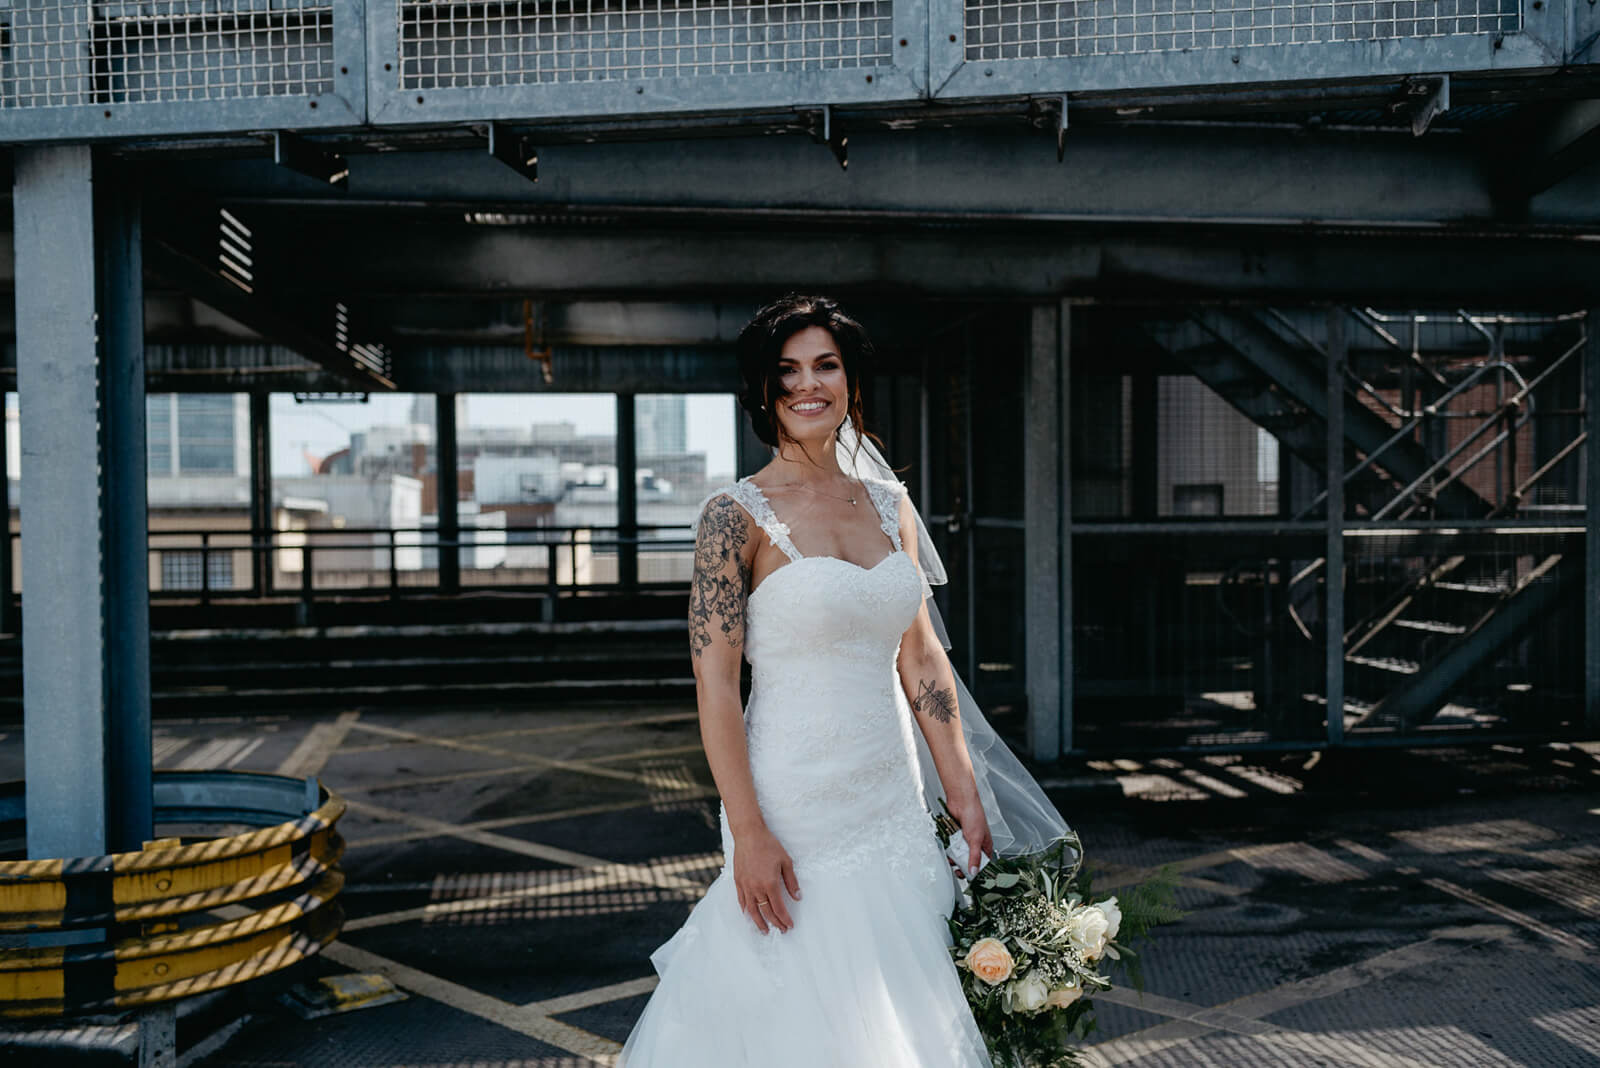 urban rustic industrial portrait of bride on carpark rooftop in the city